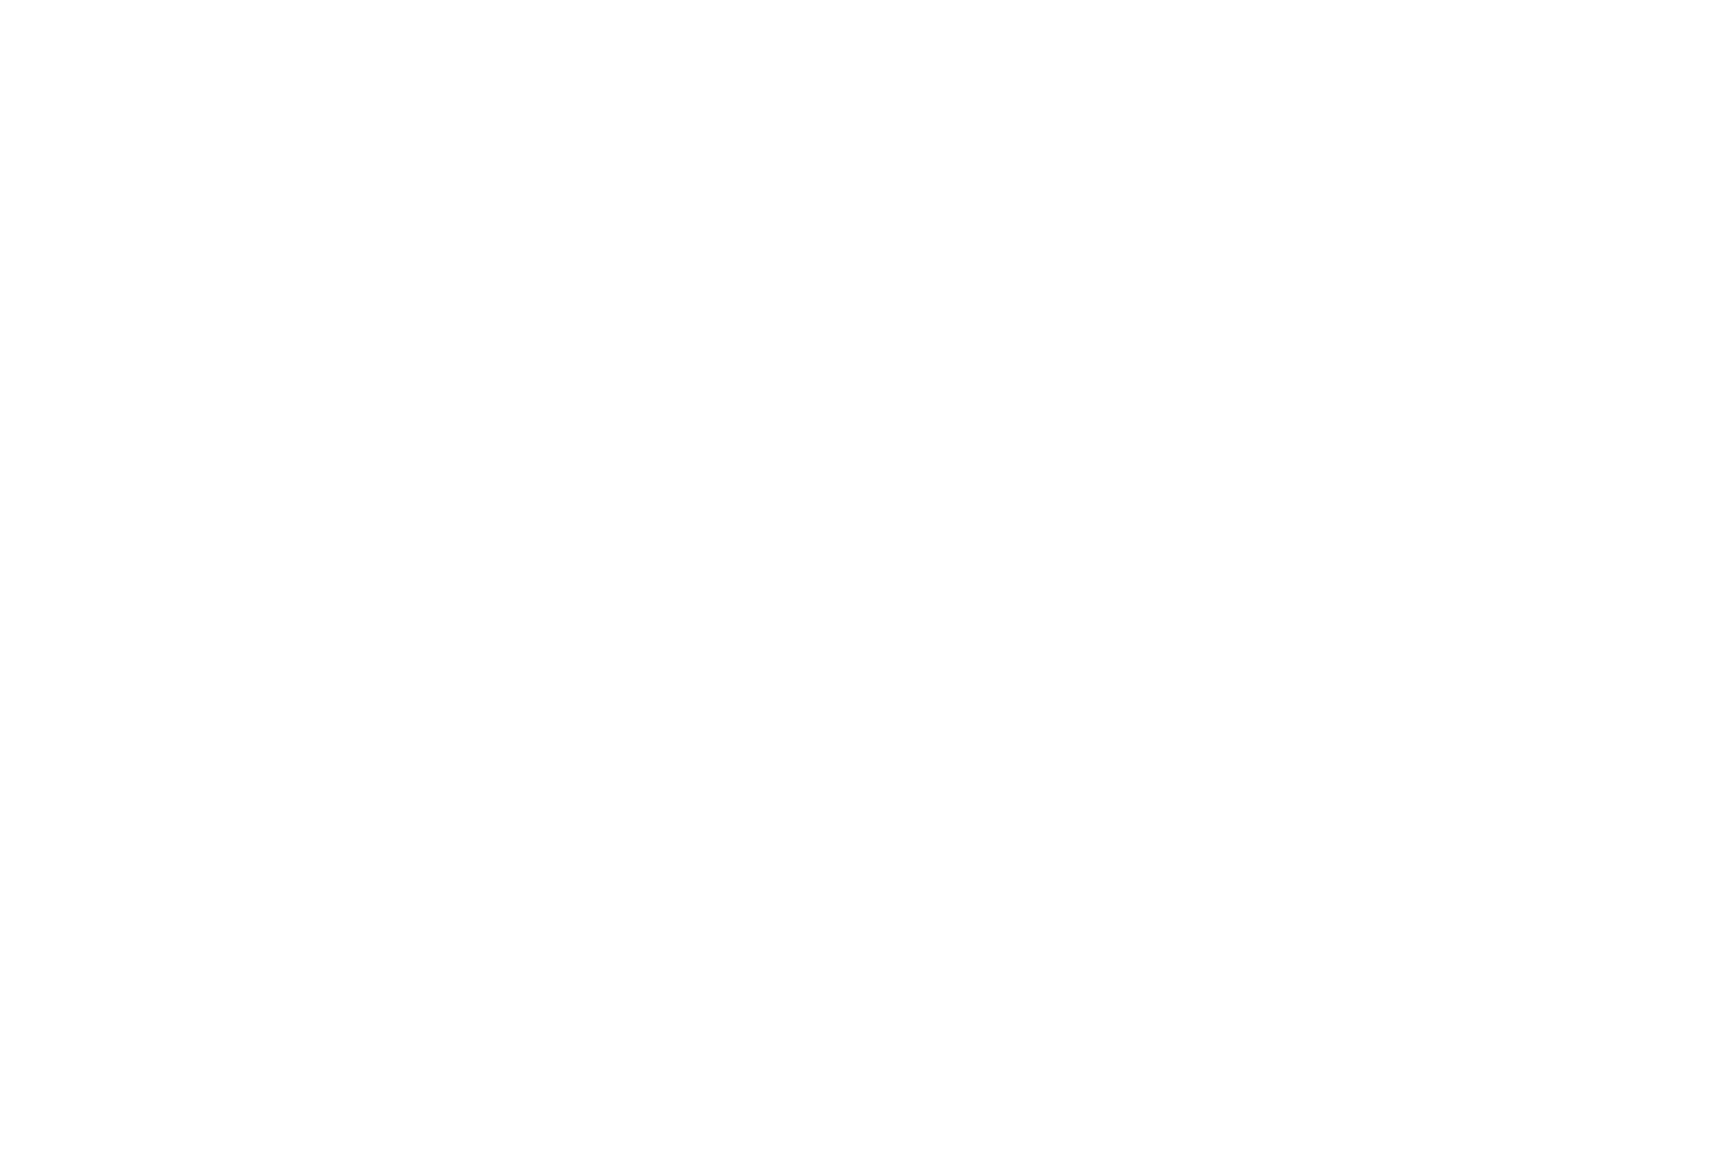 QUARTER-FINALIST - American Zeotrope Screenplay Contest